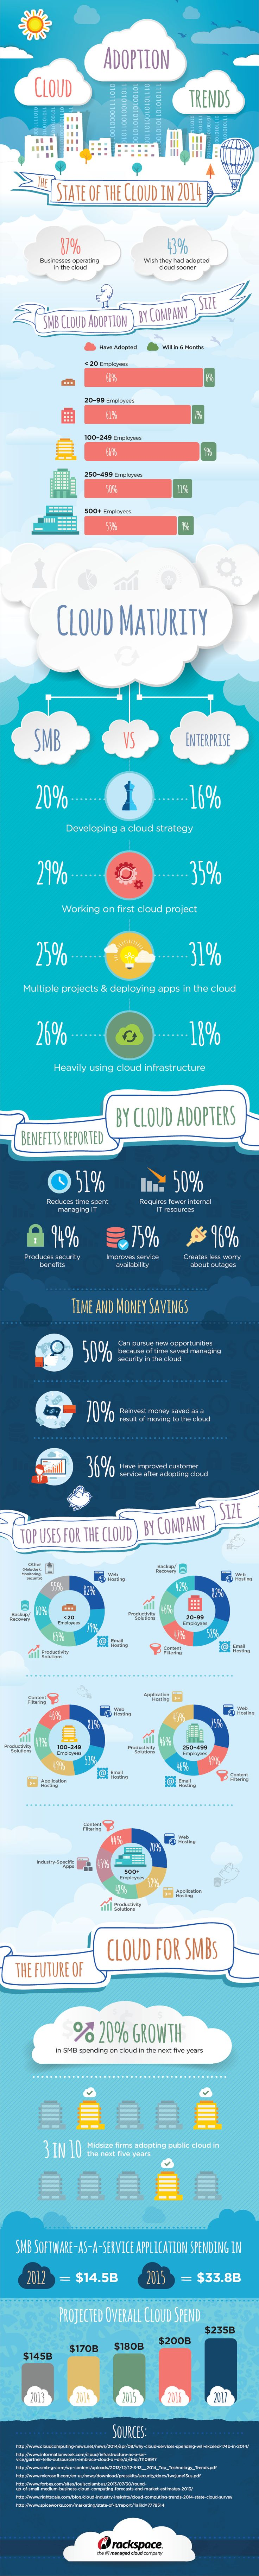 Psychology-Infographic-The-State-of-the-Cloud-In-2014-infographic-Cloud-Business-telconetworks Psychology Infographic : The State of the Cloud In 2014 #infographic #Cloud #Business #telconetworks